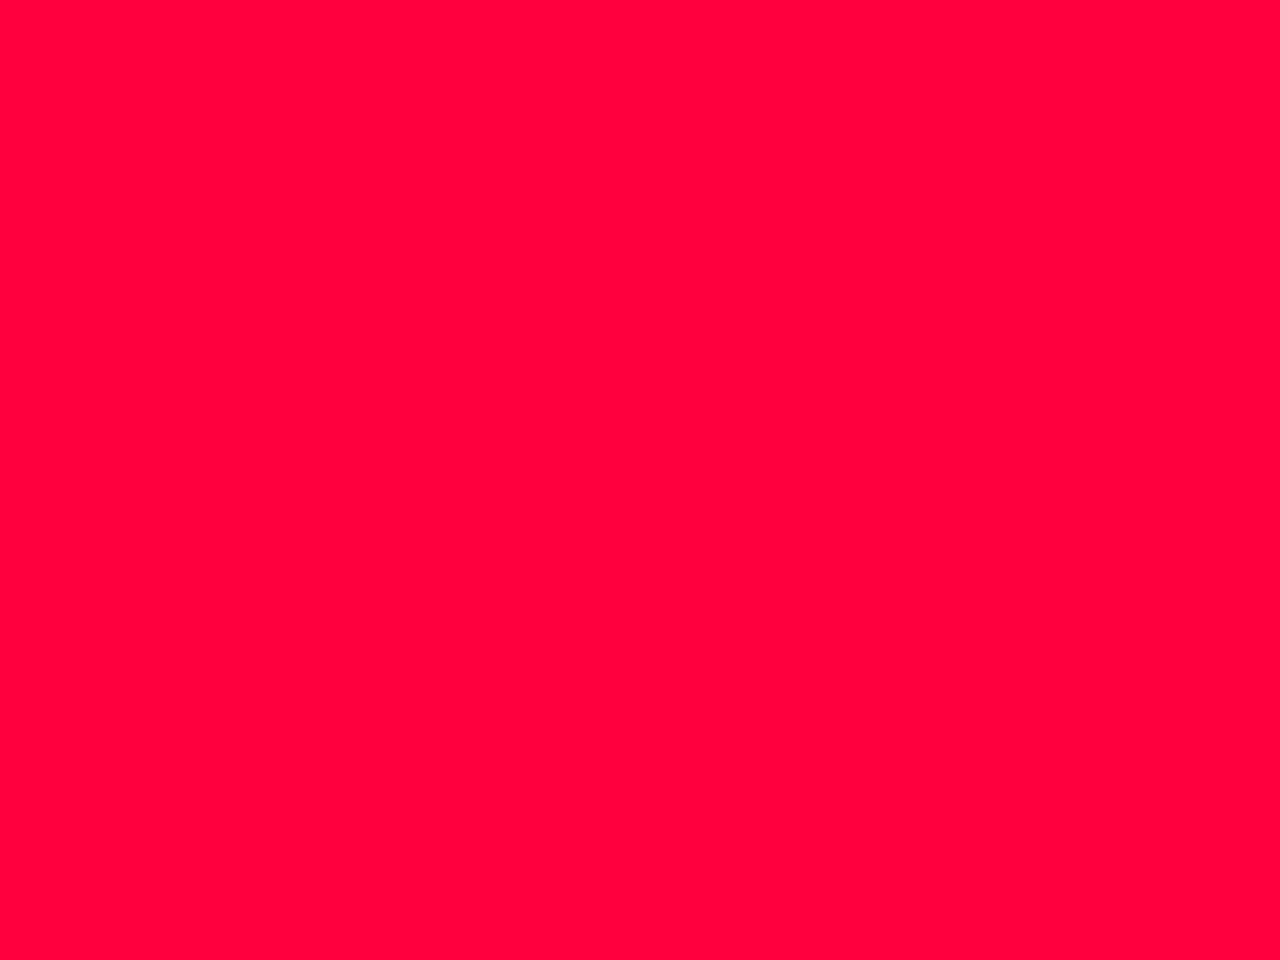 1280x960 Electric Crimson Solid Color Background